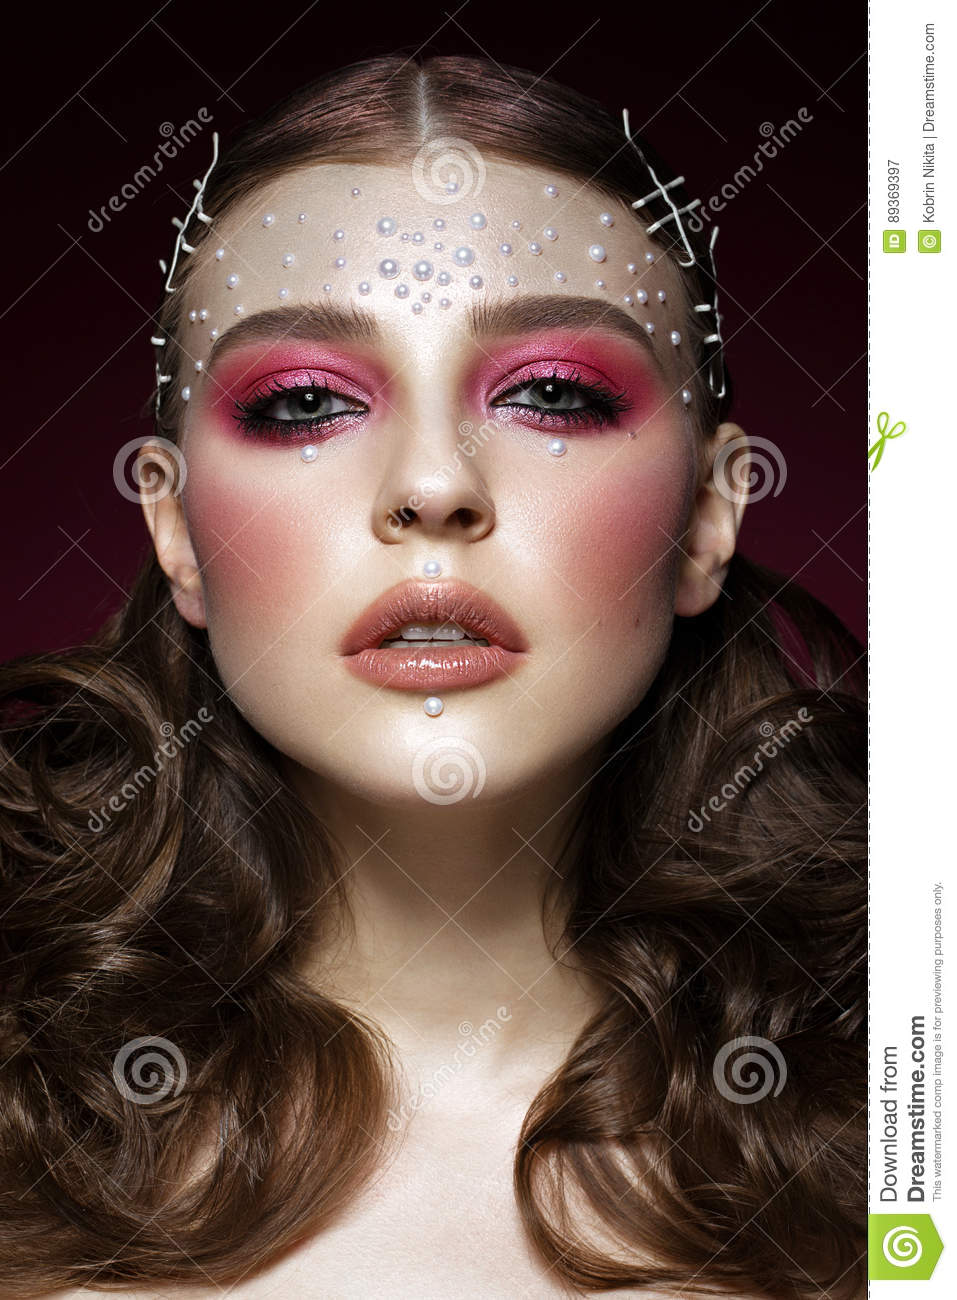 Beautiful Girl With Perfect Art Makeup And Pearl Beads Beauty Face Stock Image Image Of Paint Gloss 89369397